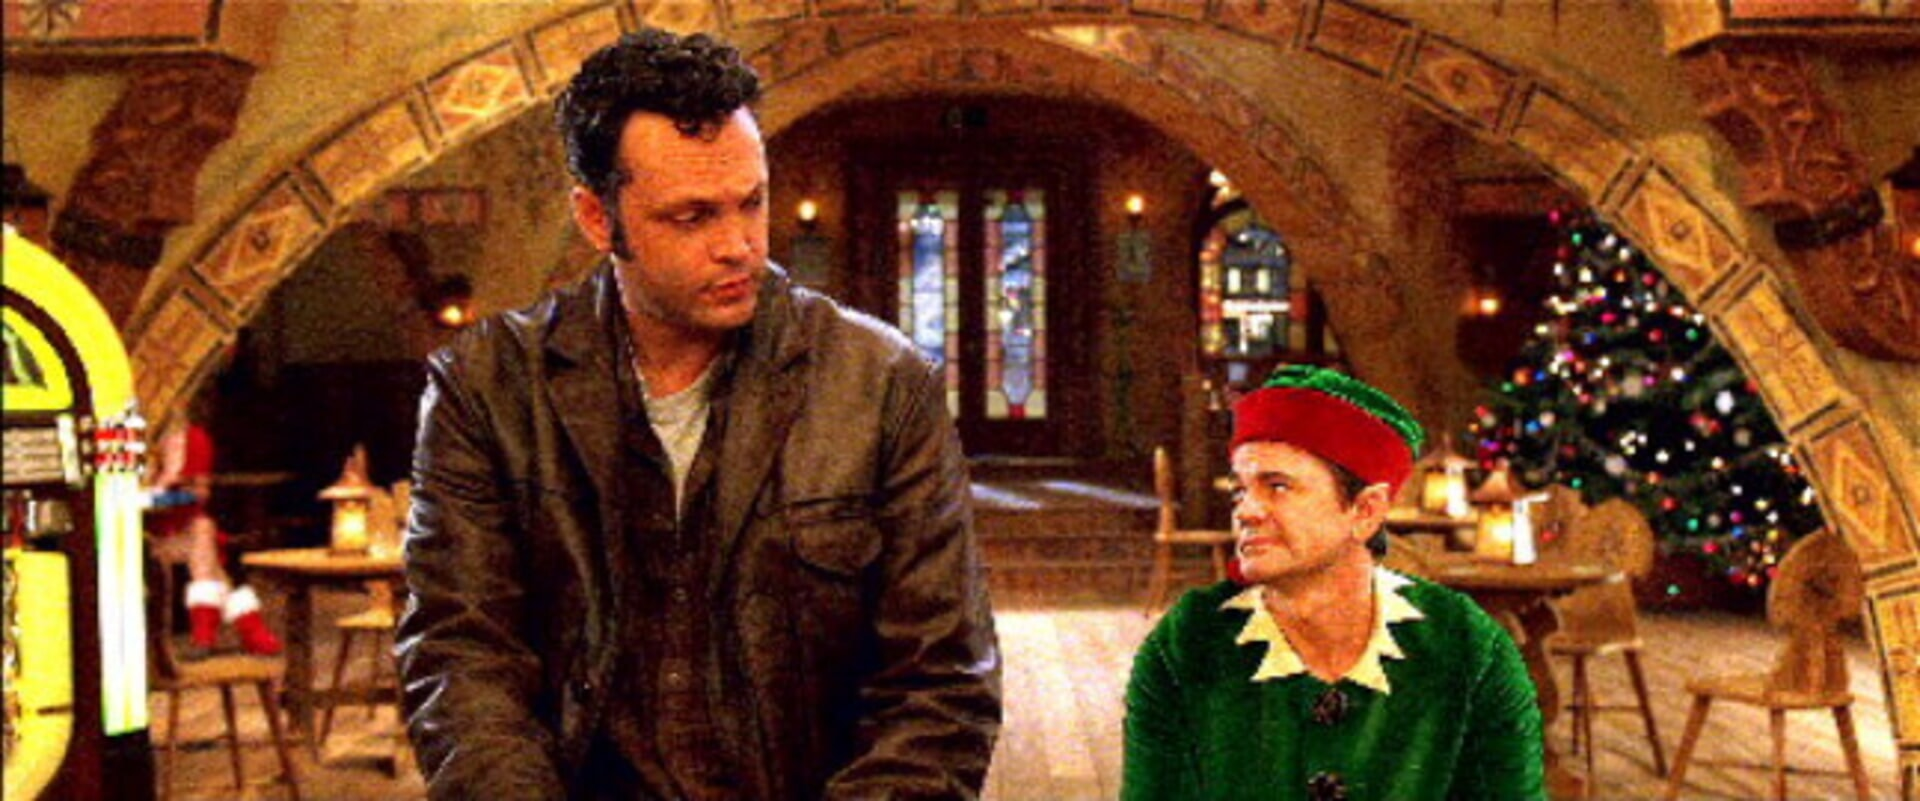 Fred Claus - Image 20